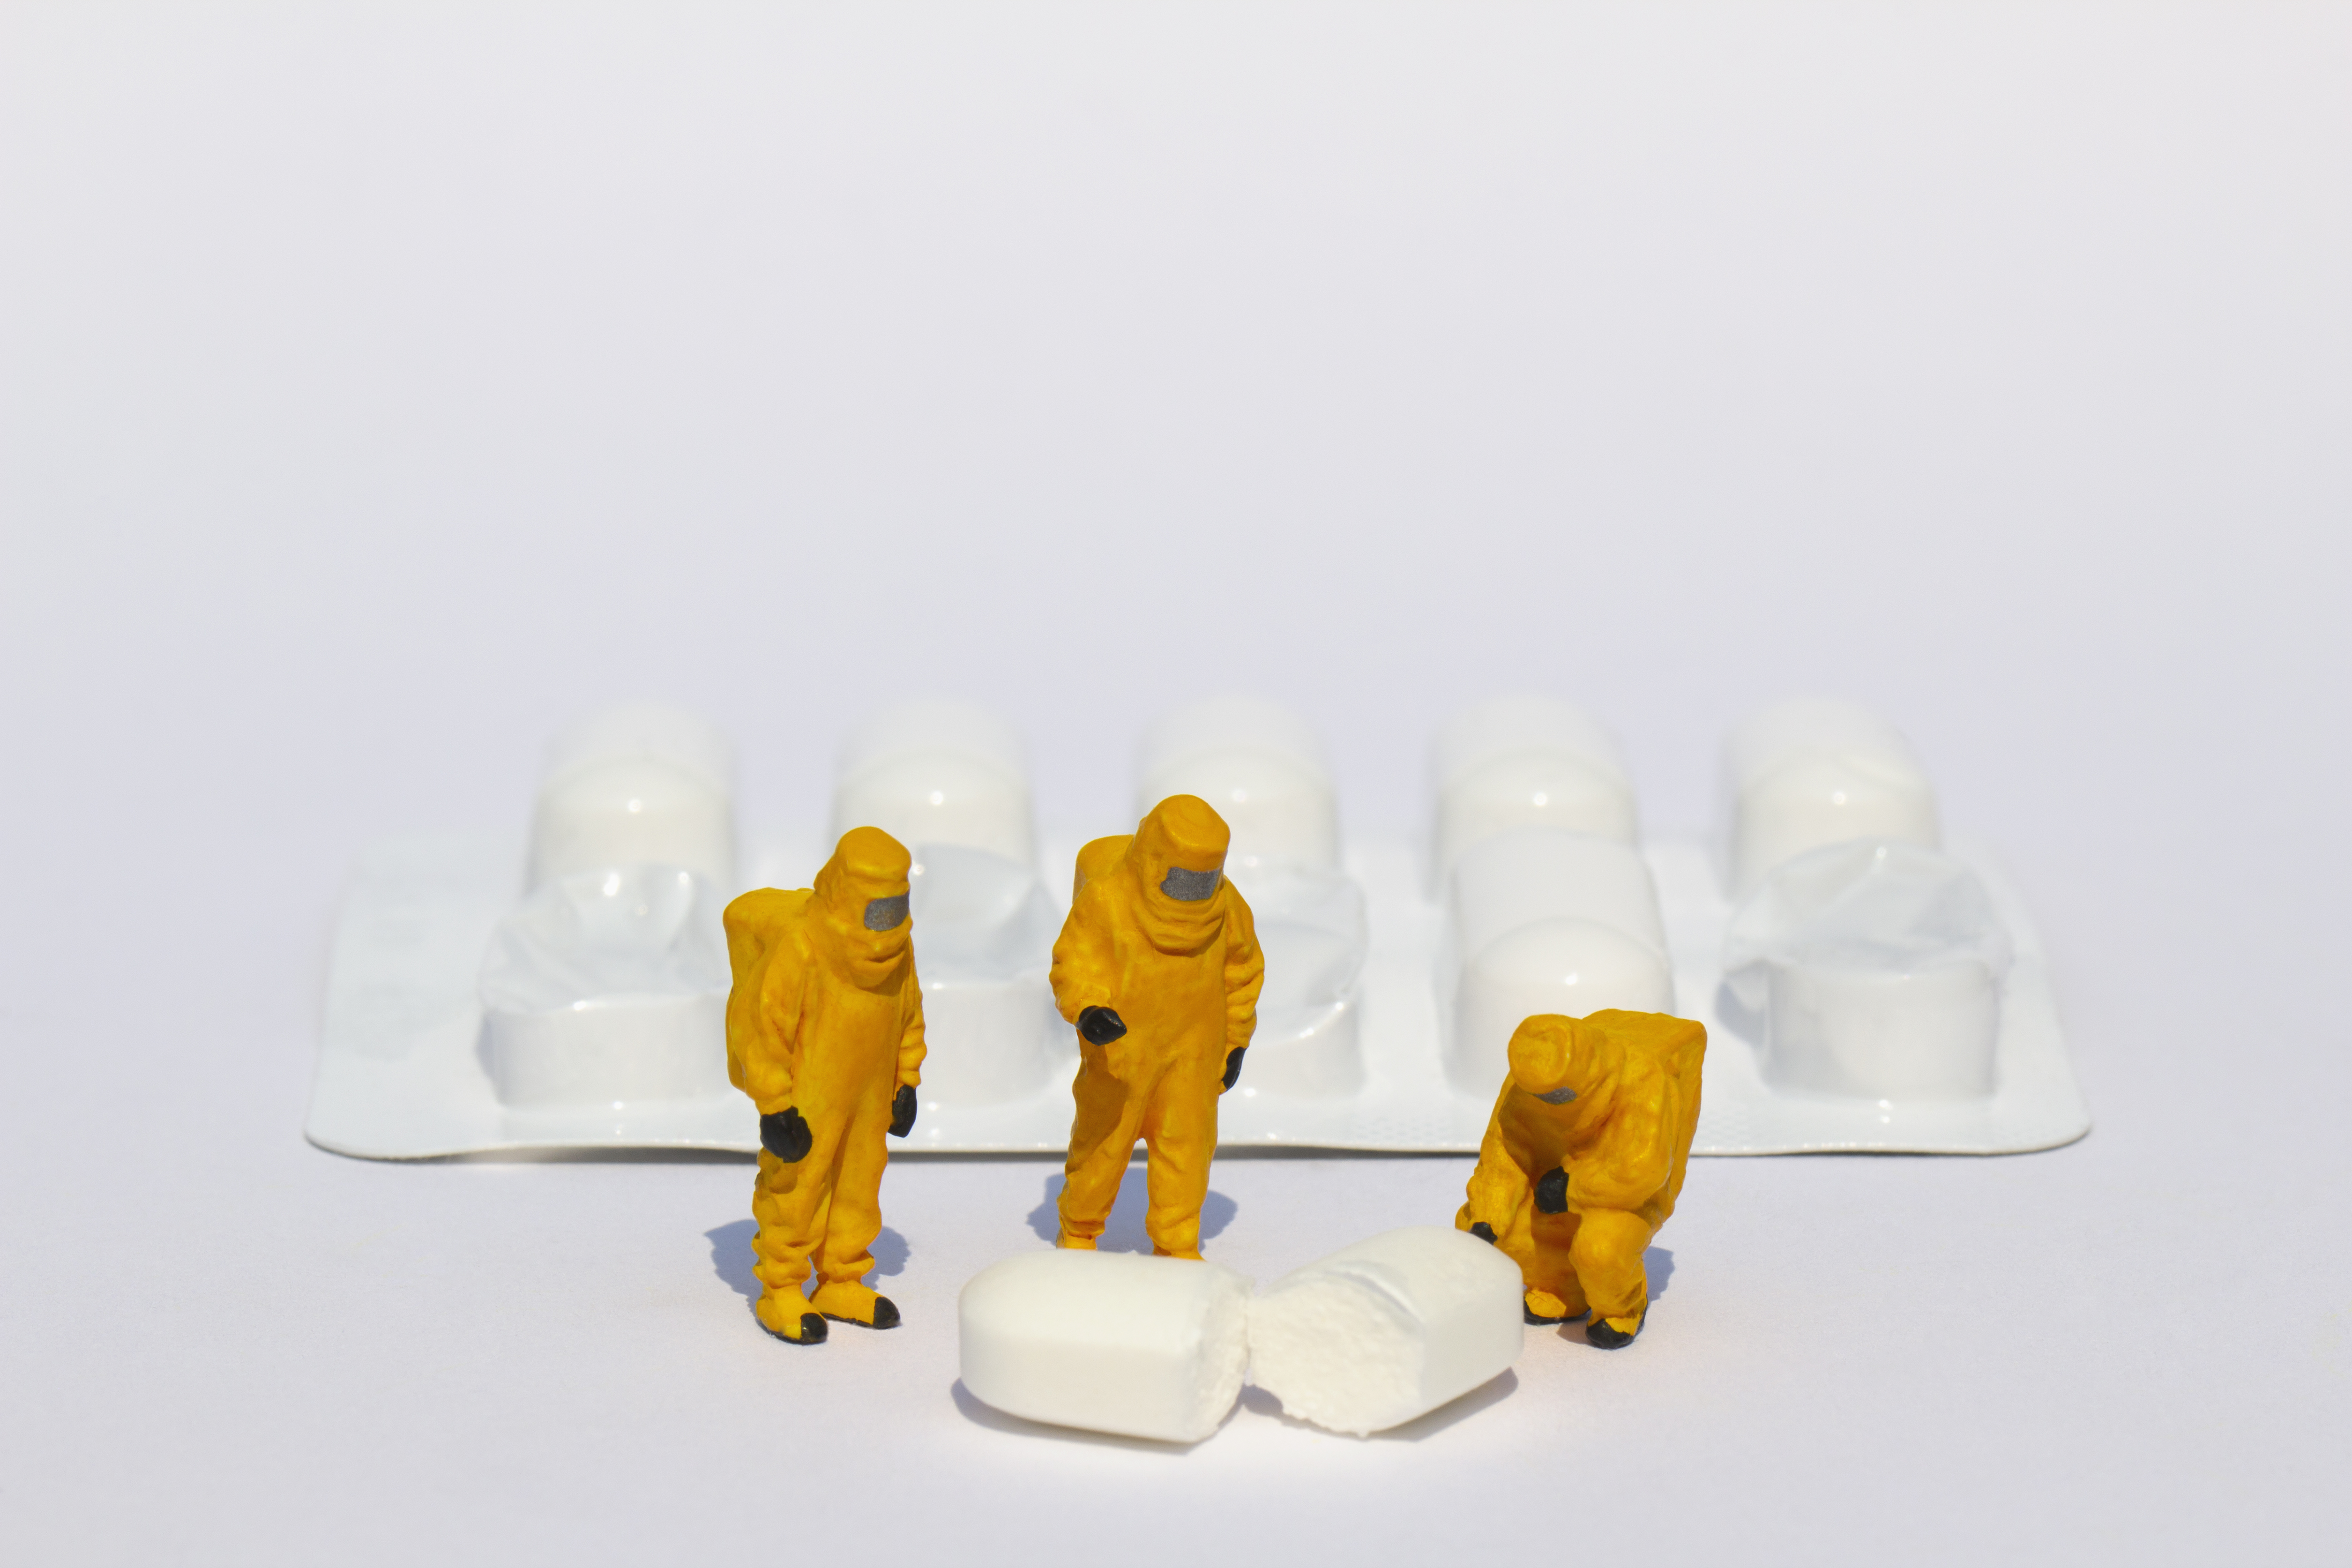 Tiny people in hazmat suits examining a prescription pill.